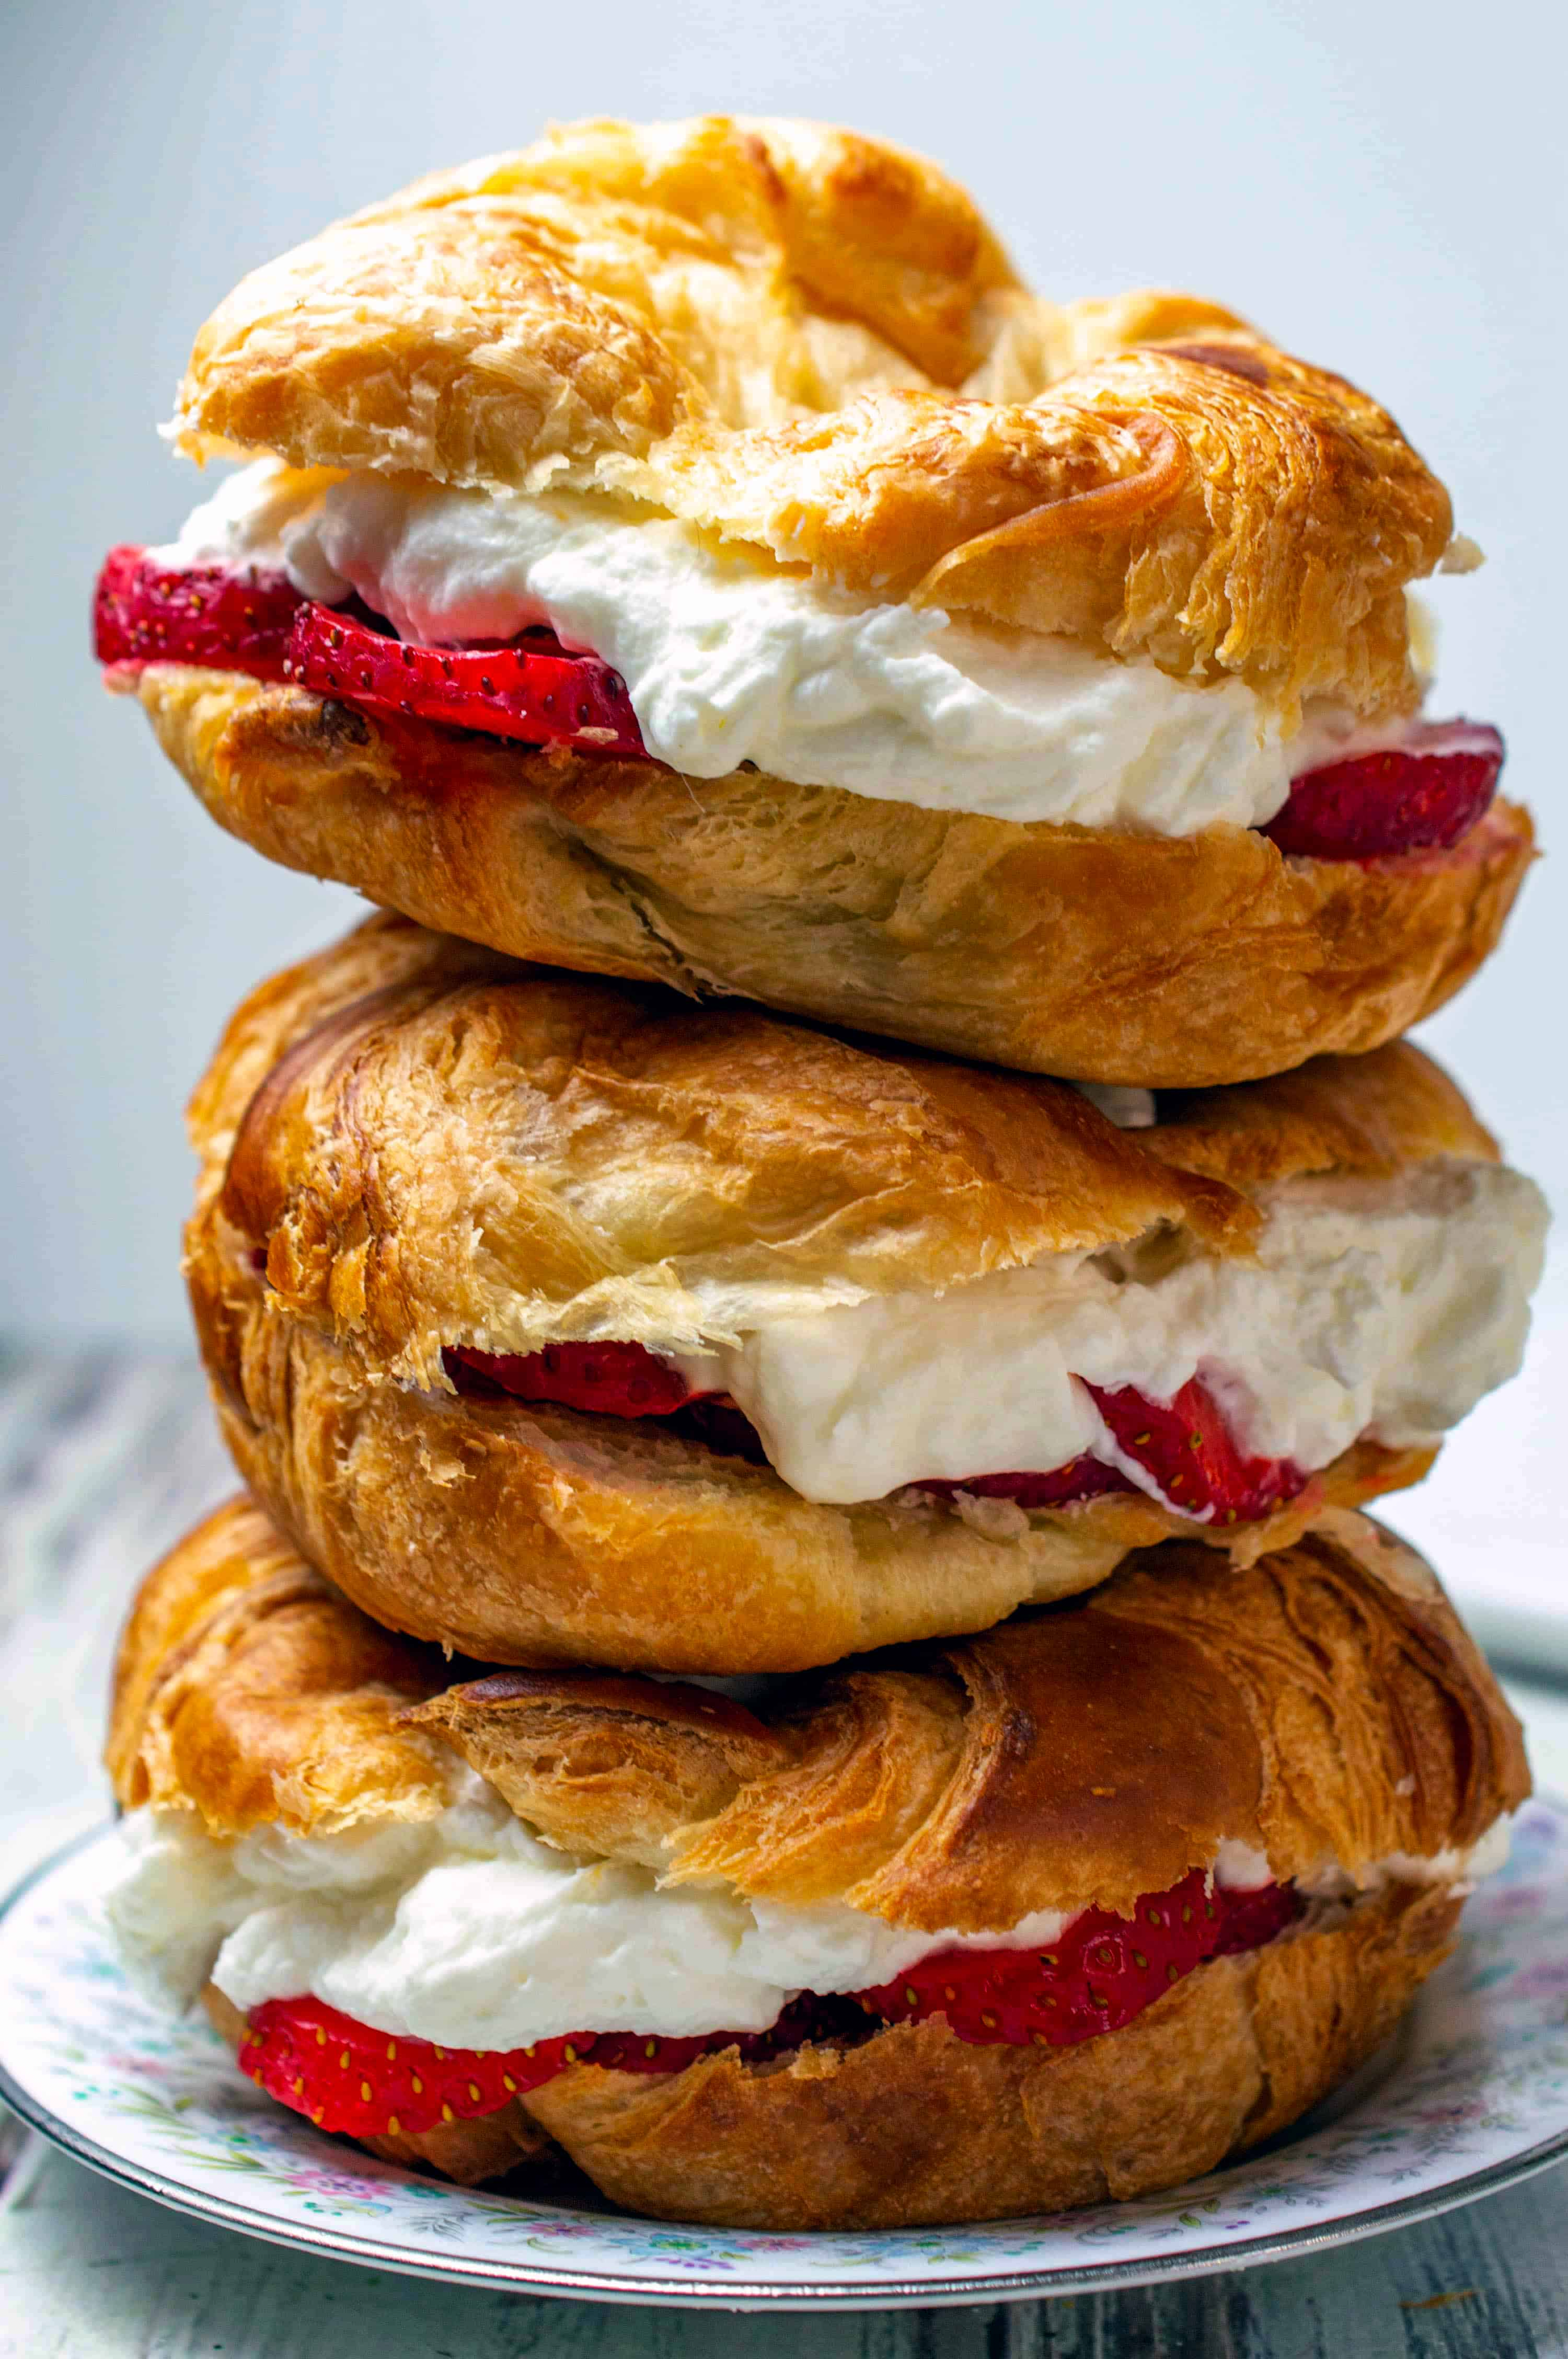 Strawberry Croissant Sandwich with Almond Whipped Cream